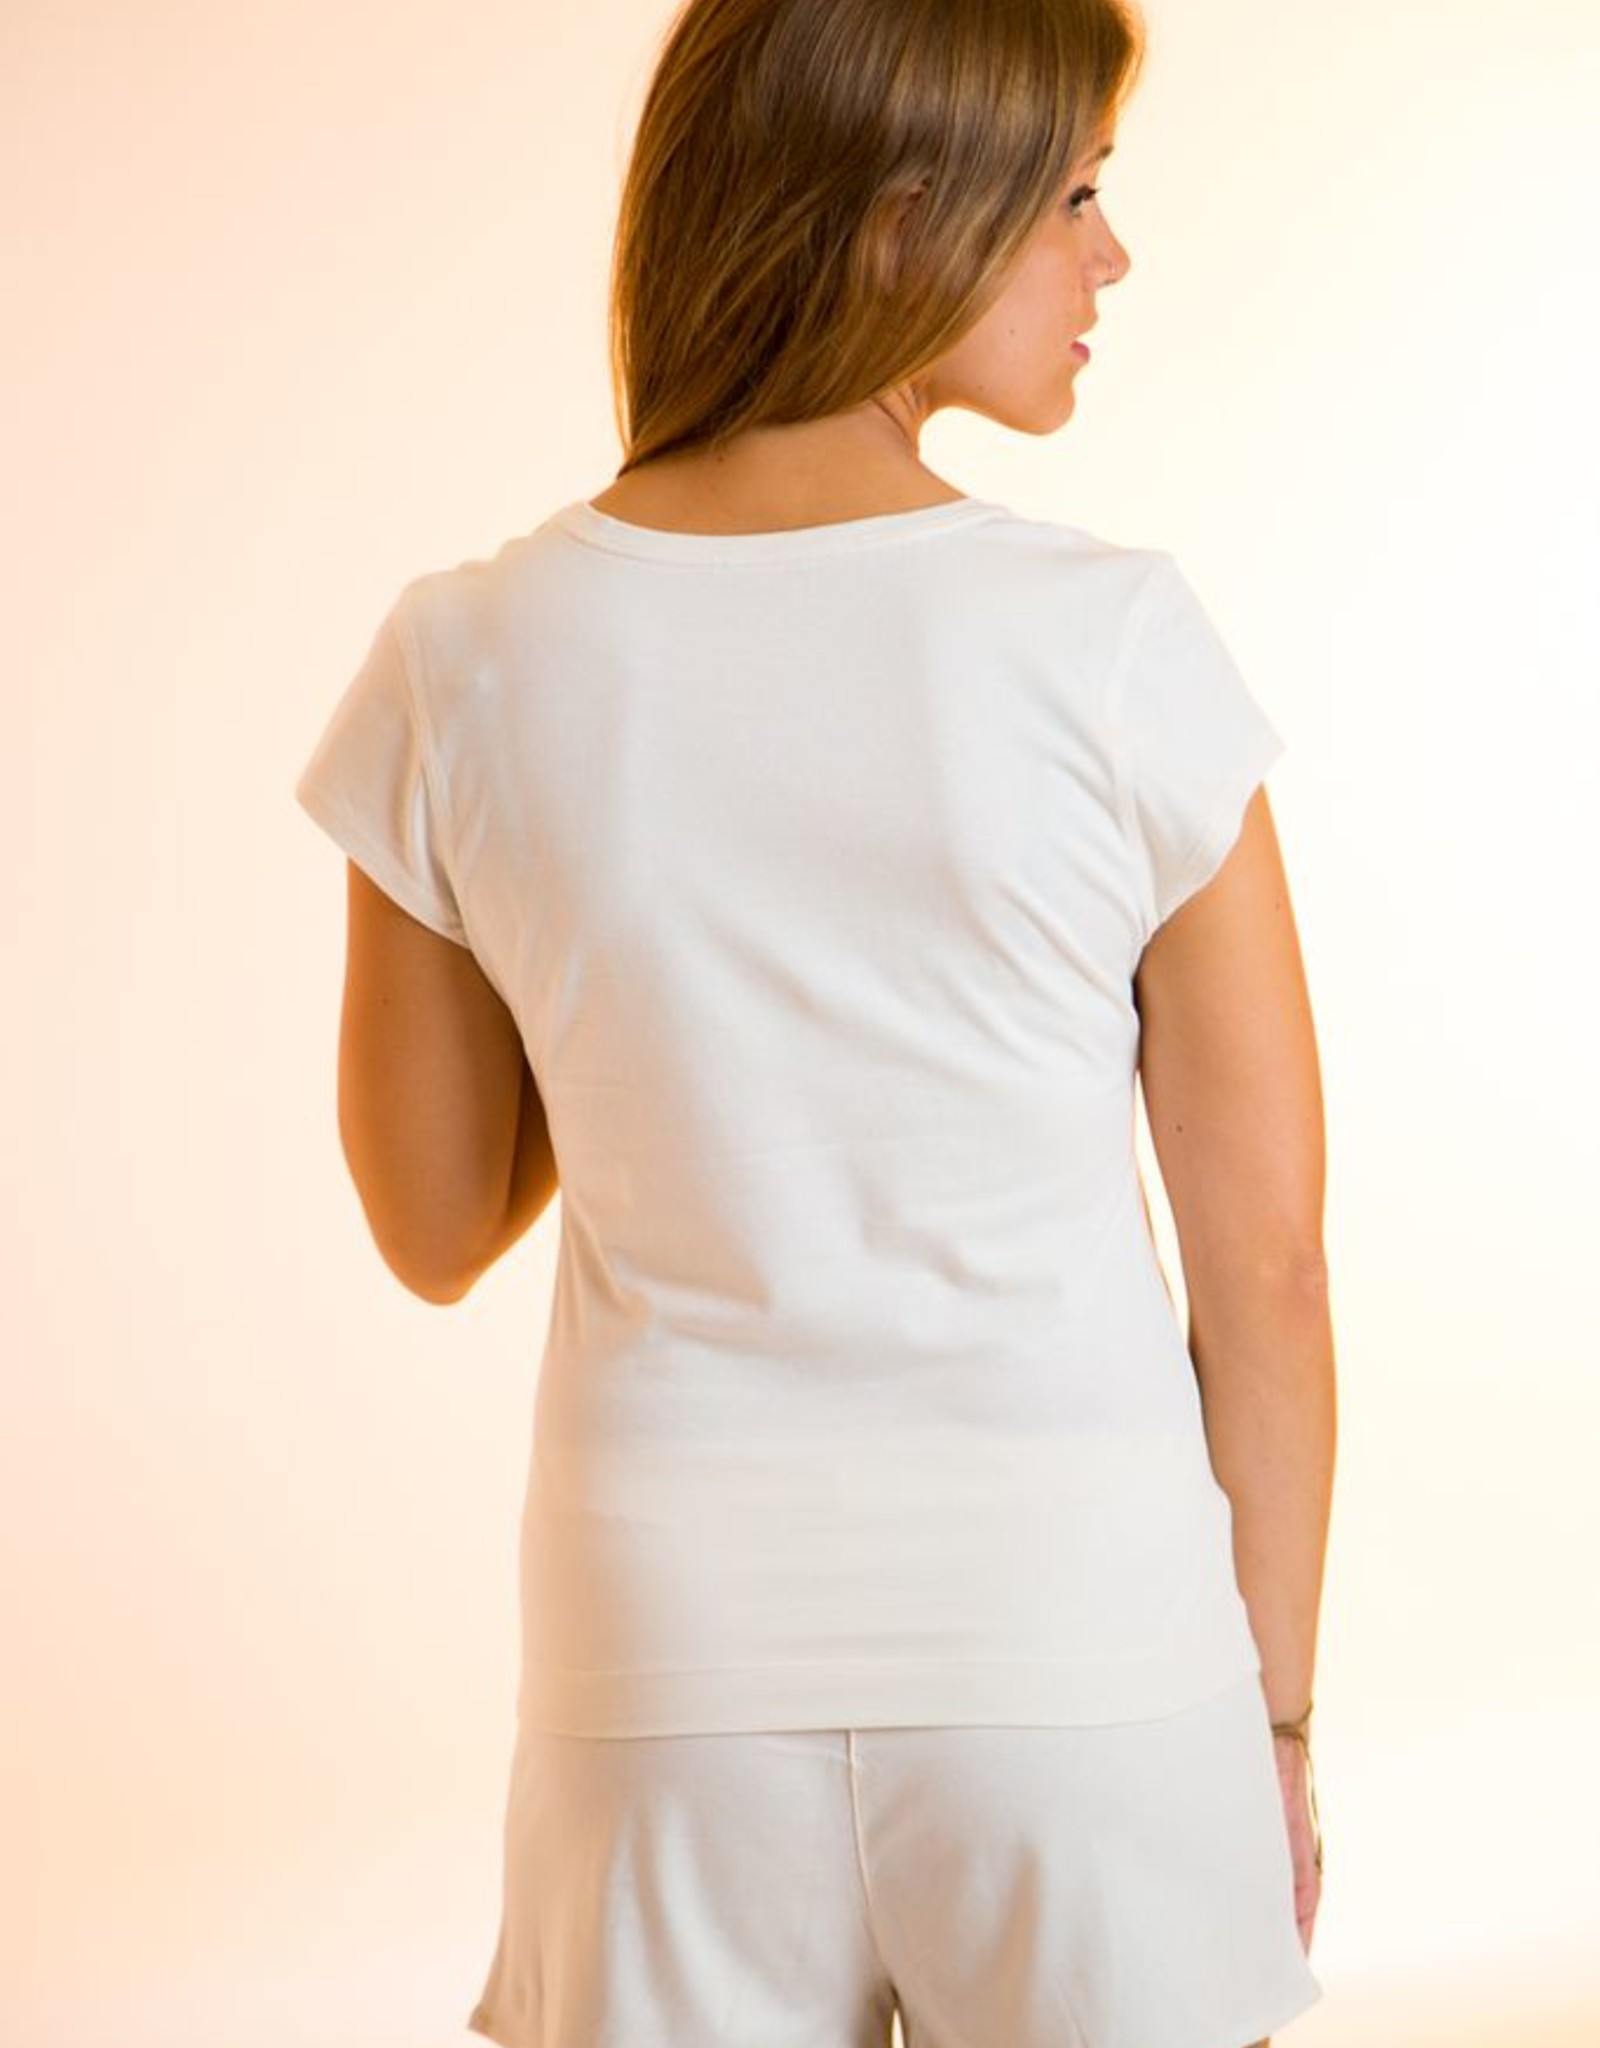 Shirt for women with round neck and short sleeves.